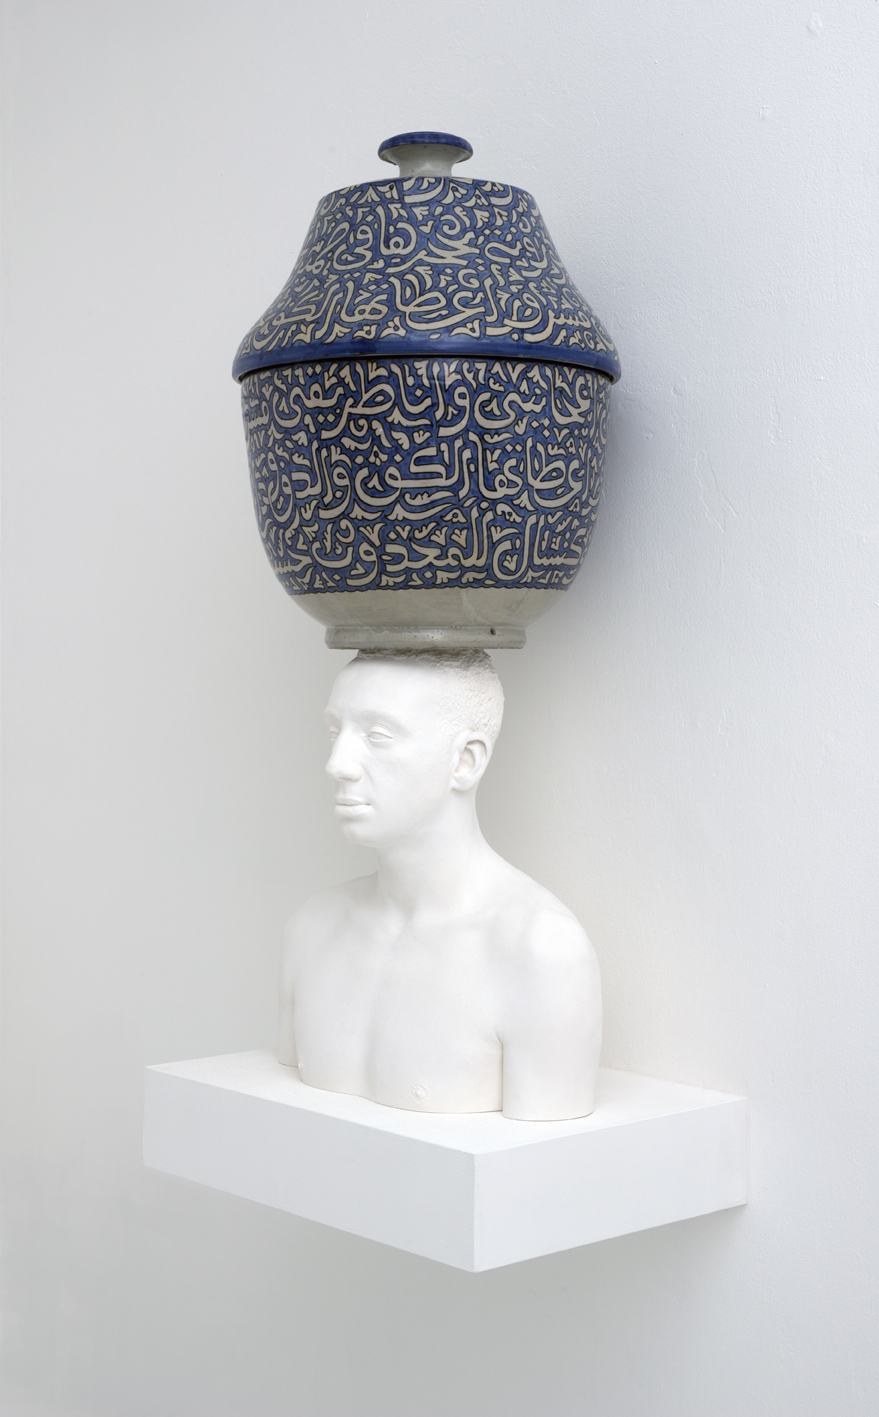 Mehdi-Georges Lahlou, Eqilibre Vase, 2012- Courtesy the artist and Rabouan Moussion Gallery Paris